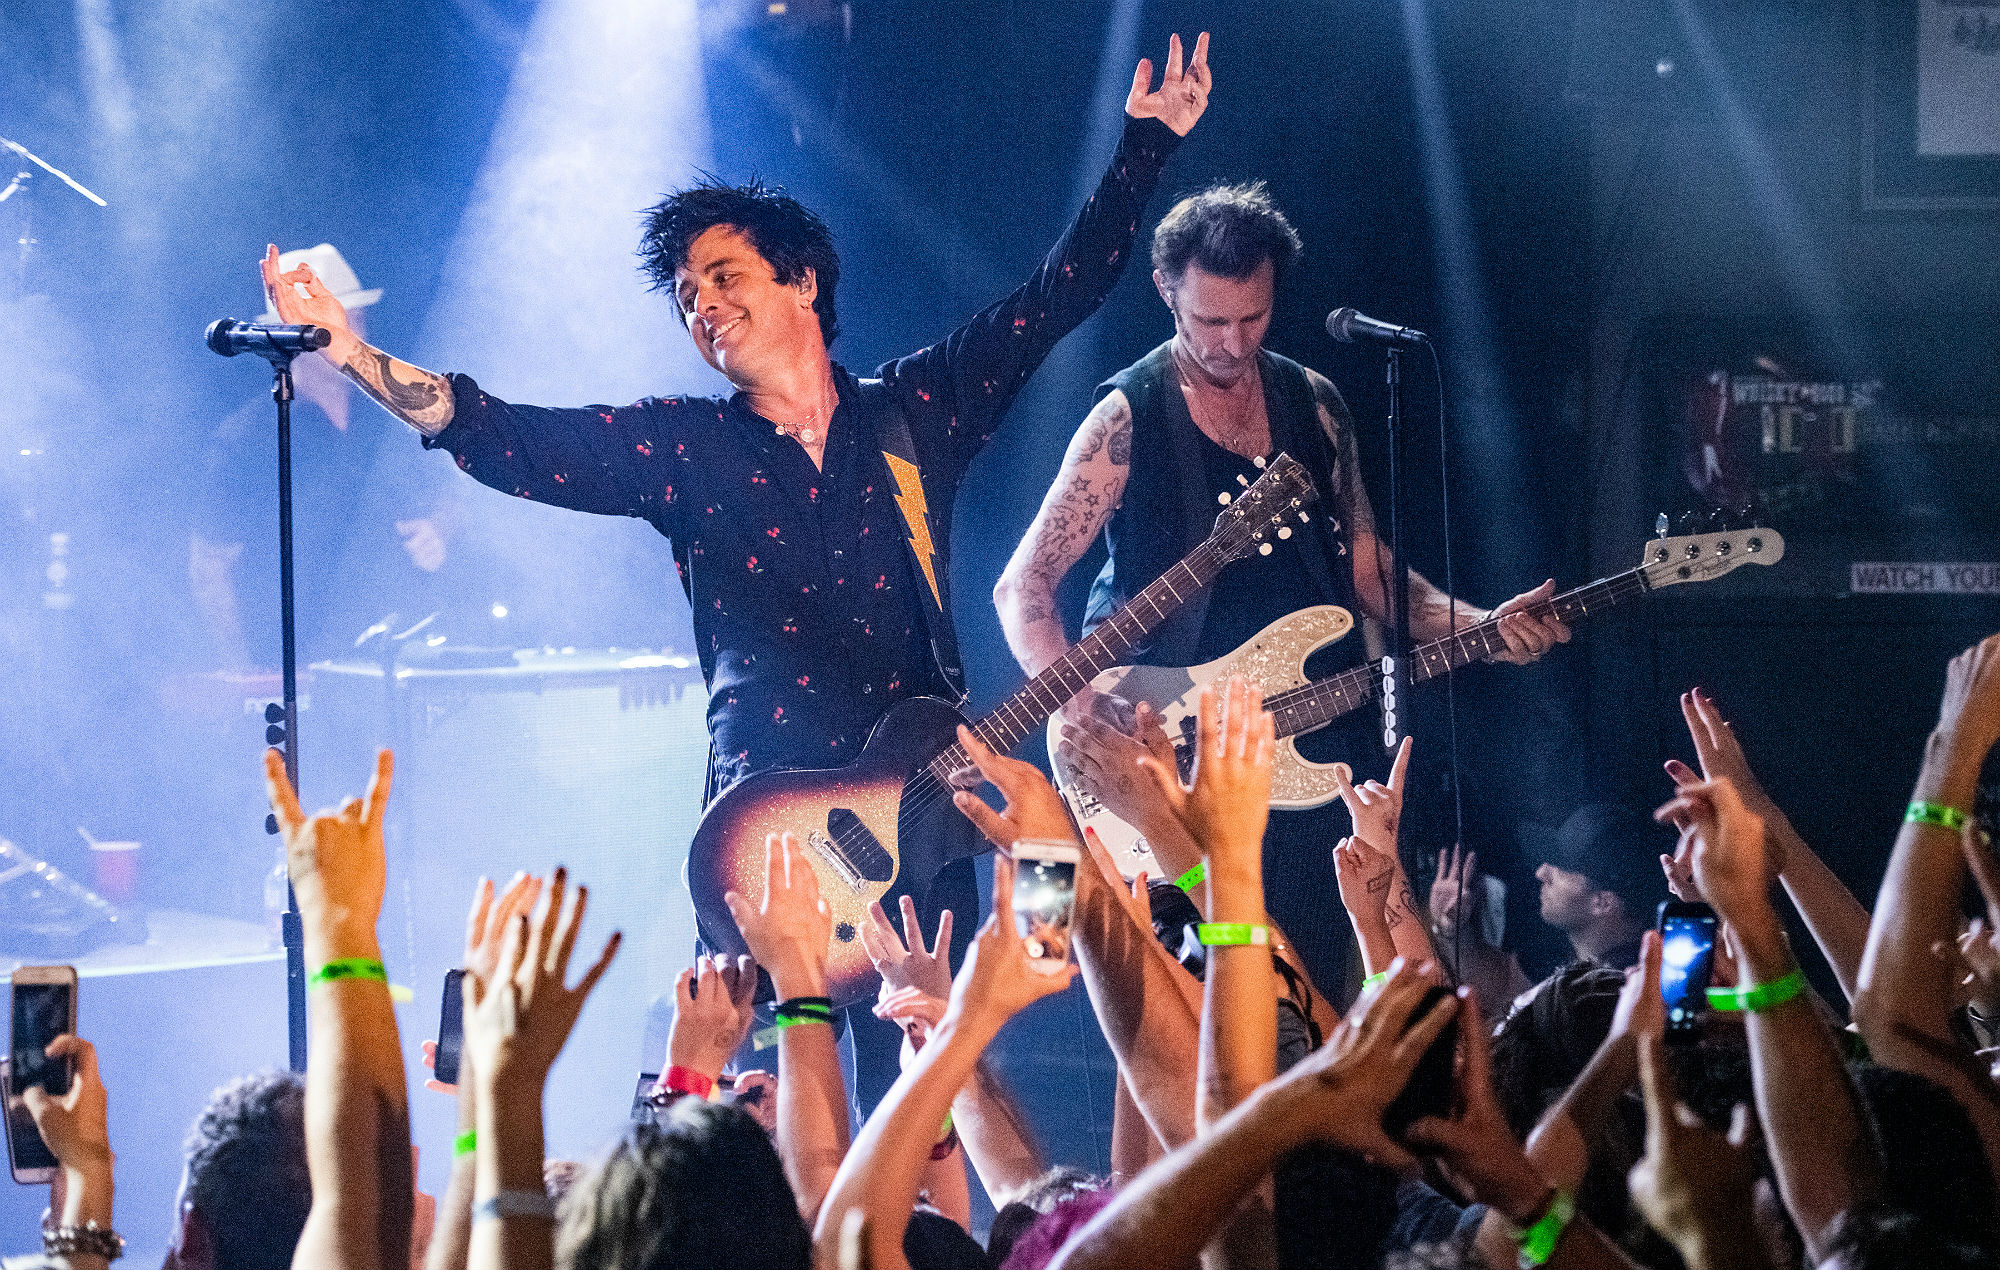 Green Day played 'Green Day' live in full